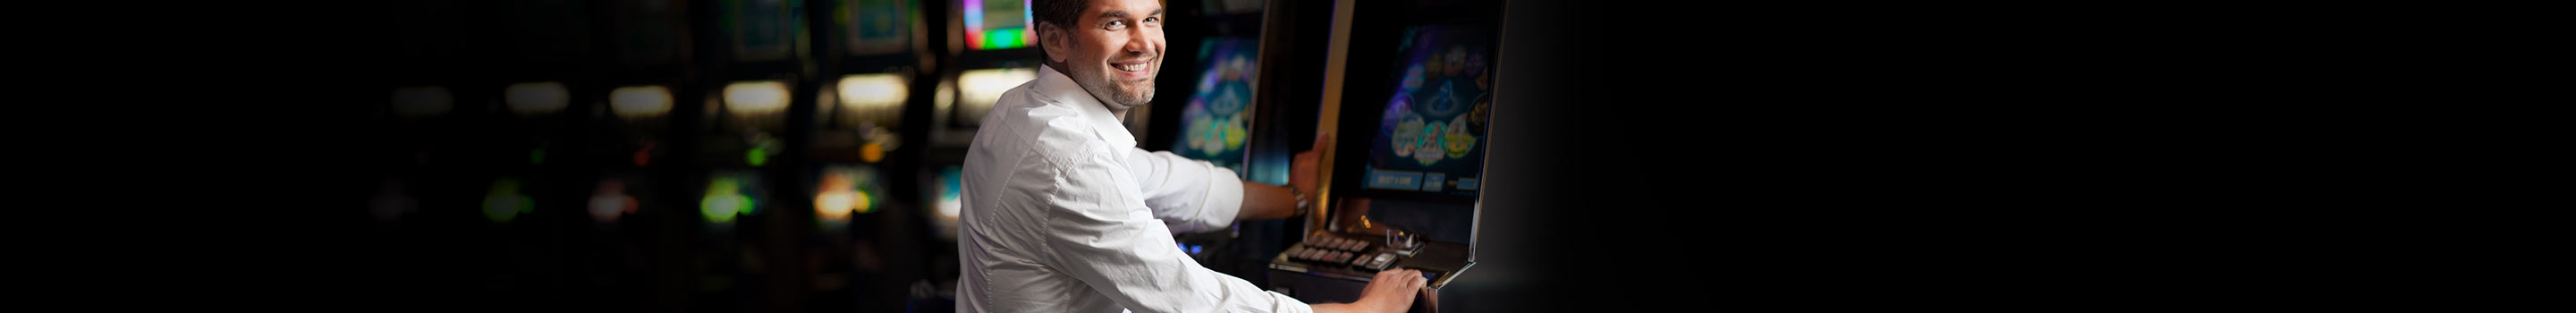 How to play slot machines - tips and tricks